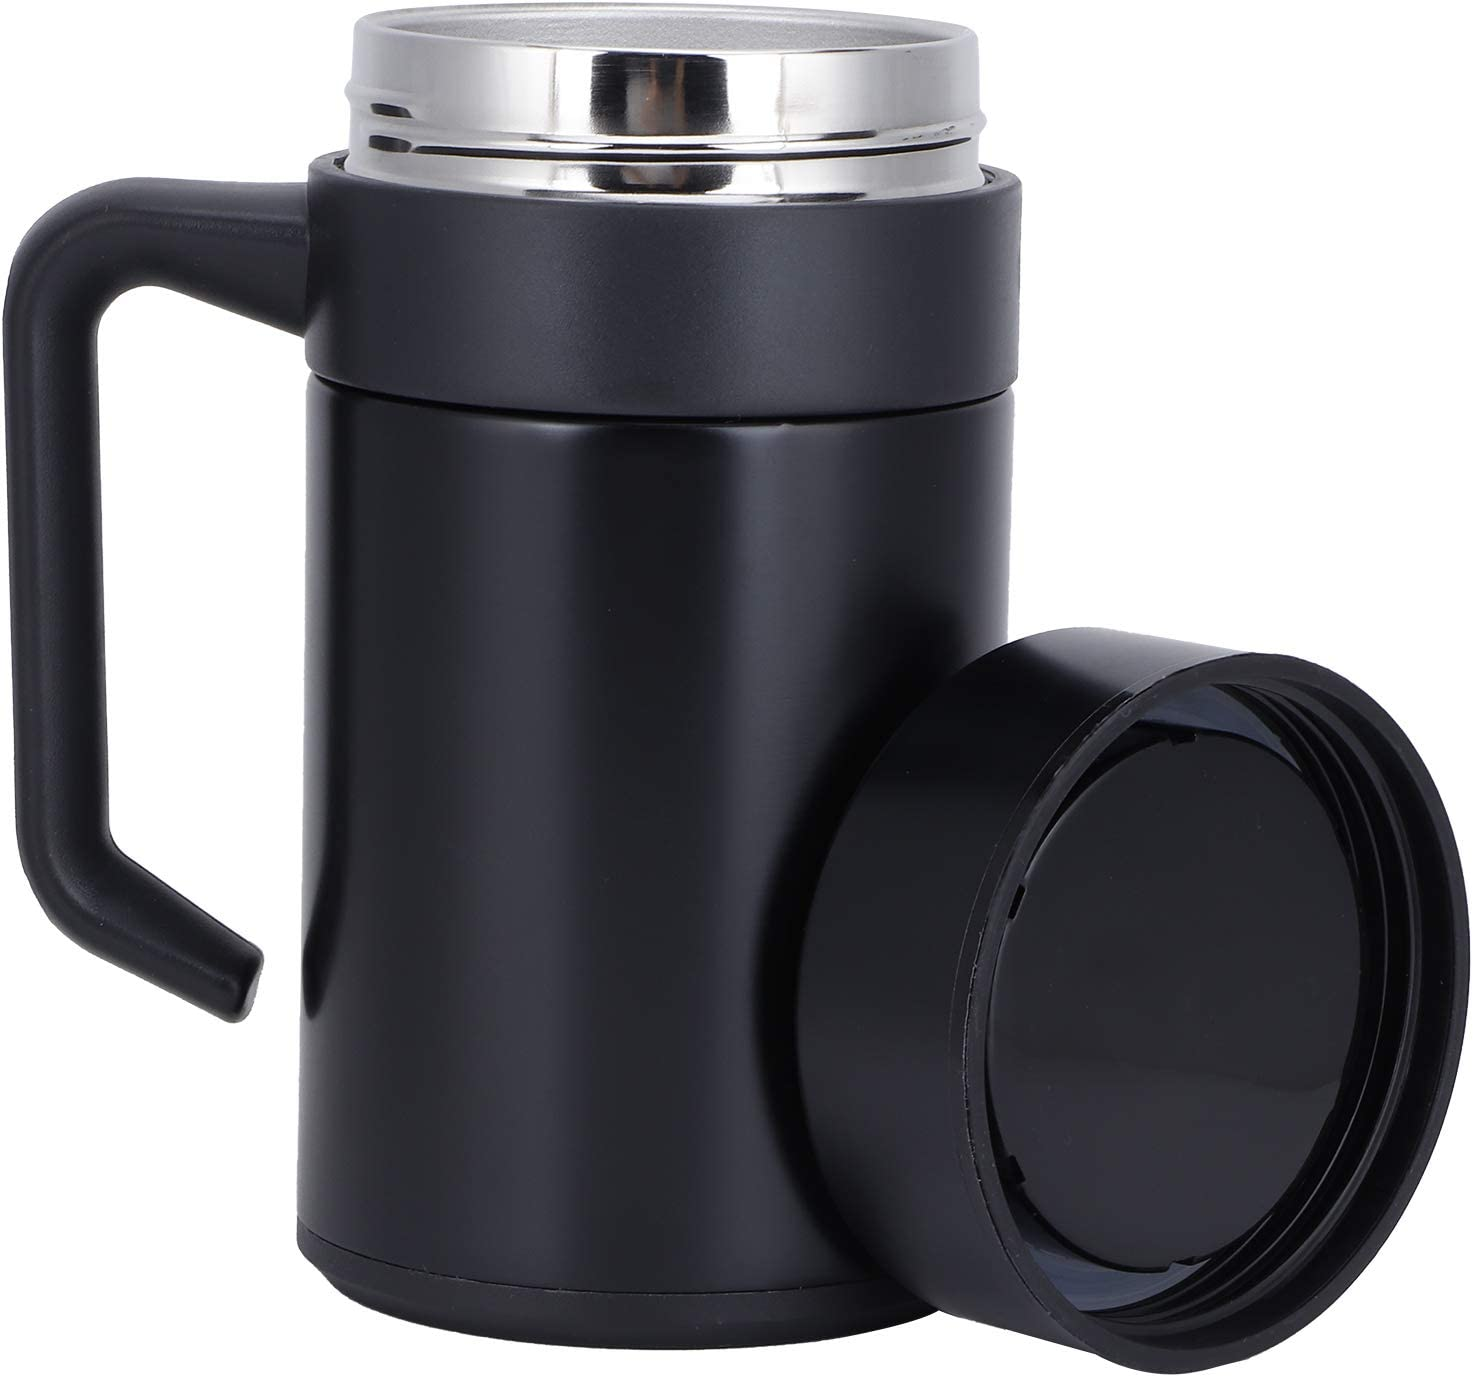 Coffee Mug Trust Corrosion Popular brand Resistance Large‑Capacity Stainless S